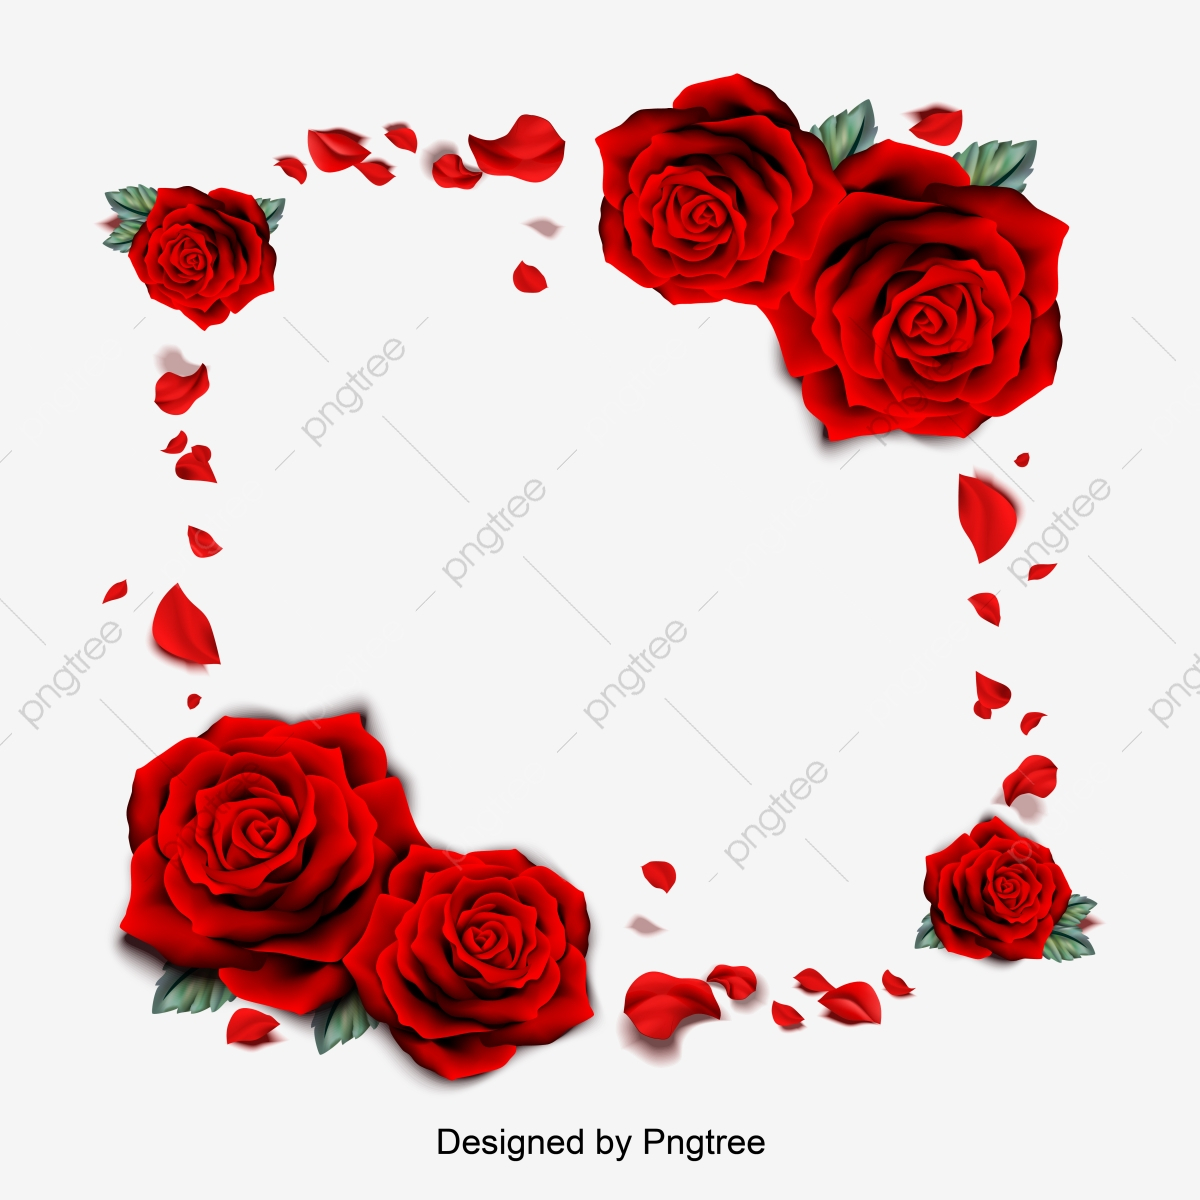 pngtree vector illustration of red rose petal borders romantic valentines day borders png image